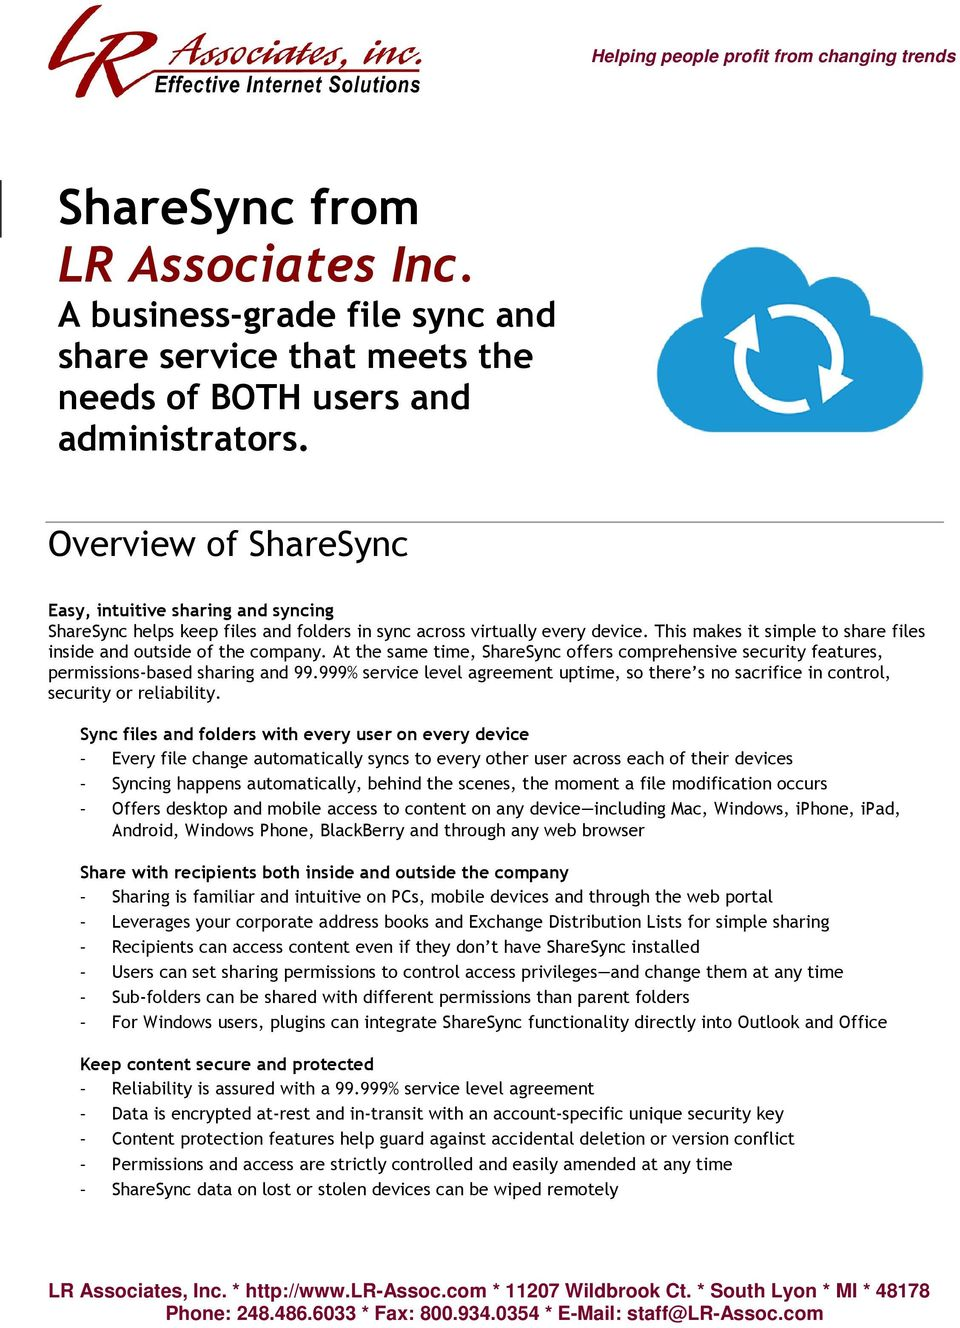 This makes it simple to share files inside and outside of the company. At the same time, ShareSync offers comprehensive security features, permissions-based sharing and 99.